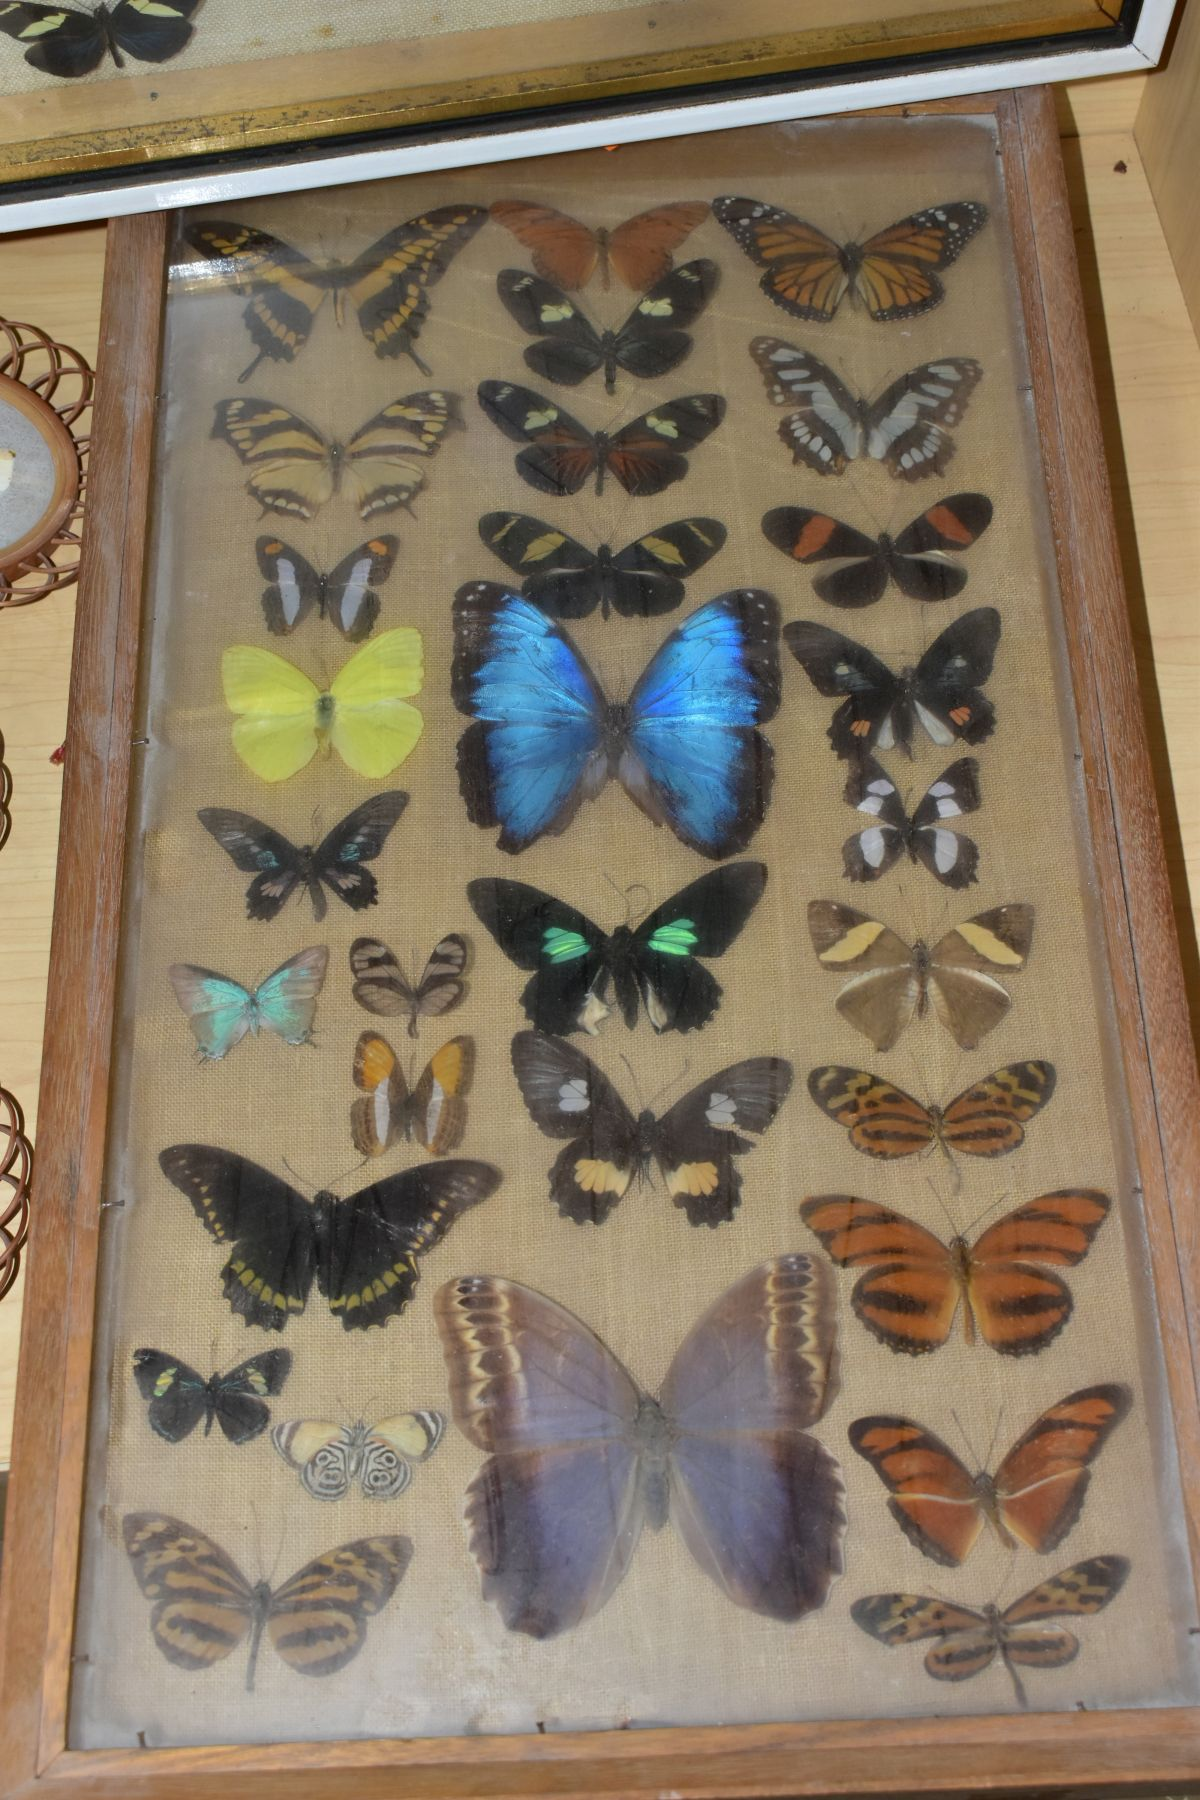 THREE DISPLAY CASES CONTAINING BUTTERFLIES AND MOTH SPECIMENS, together with four circular framed - Image 4 of 10